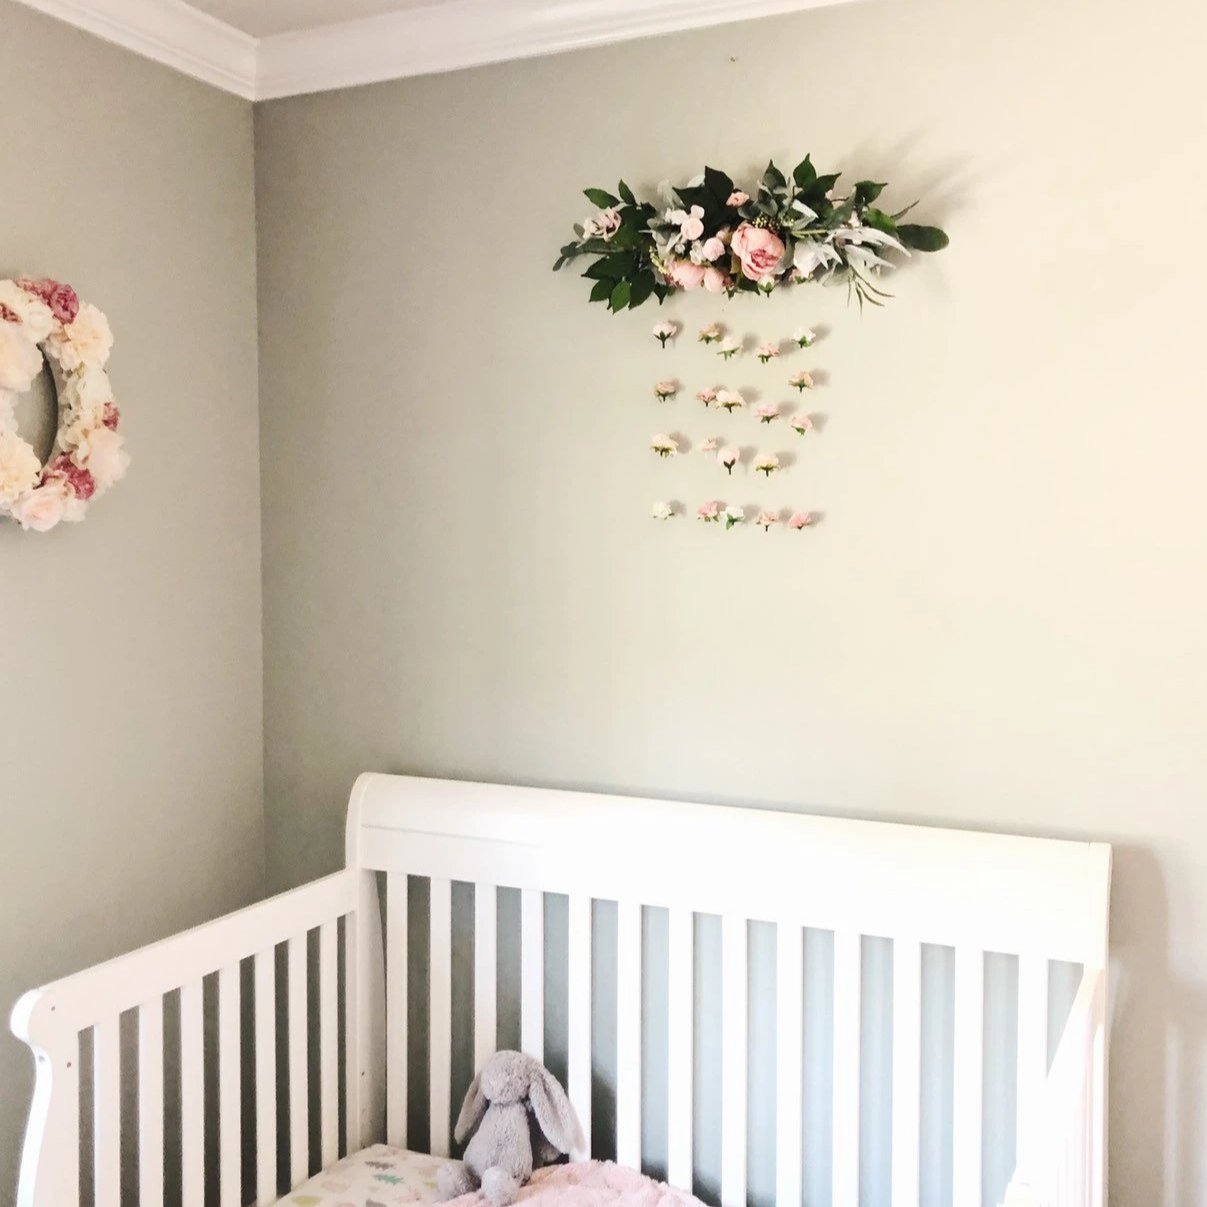 floating flower wall for baby girl nursery, floral nursery decor, blush pink flower wall, over the crib decor, girl nursery ideas, flower decor